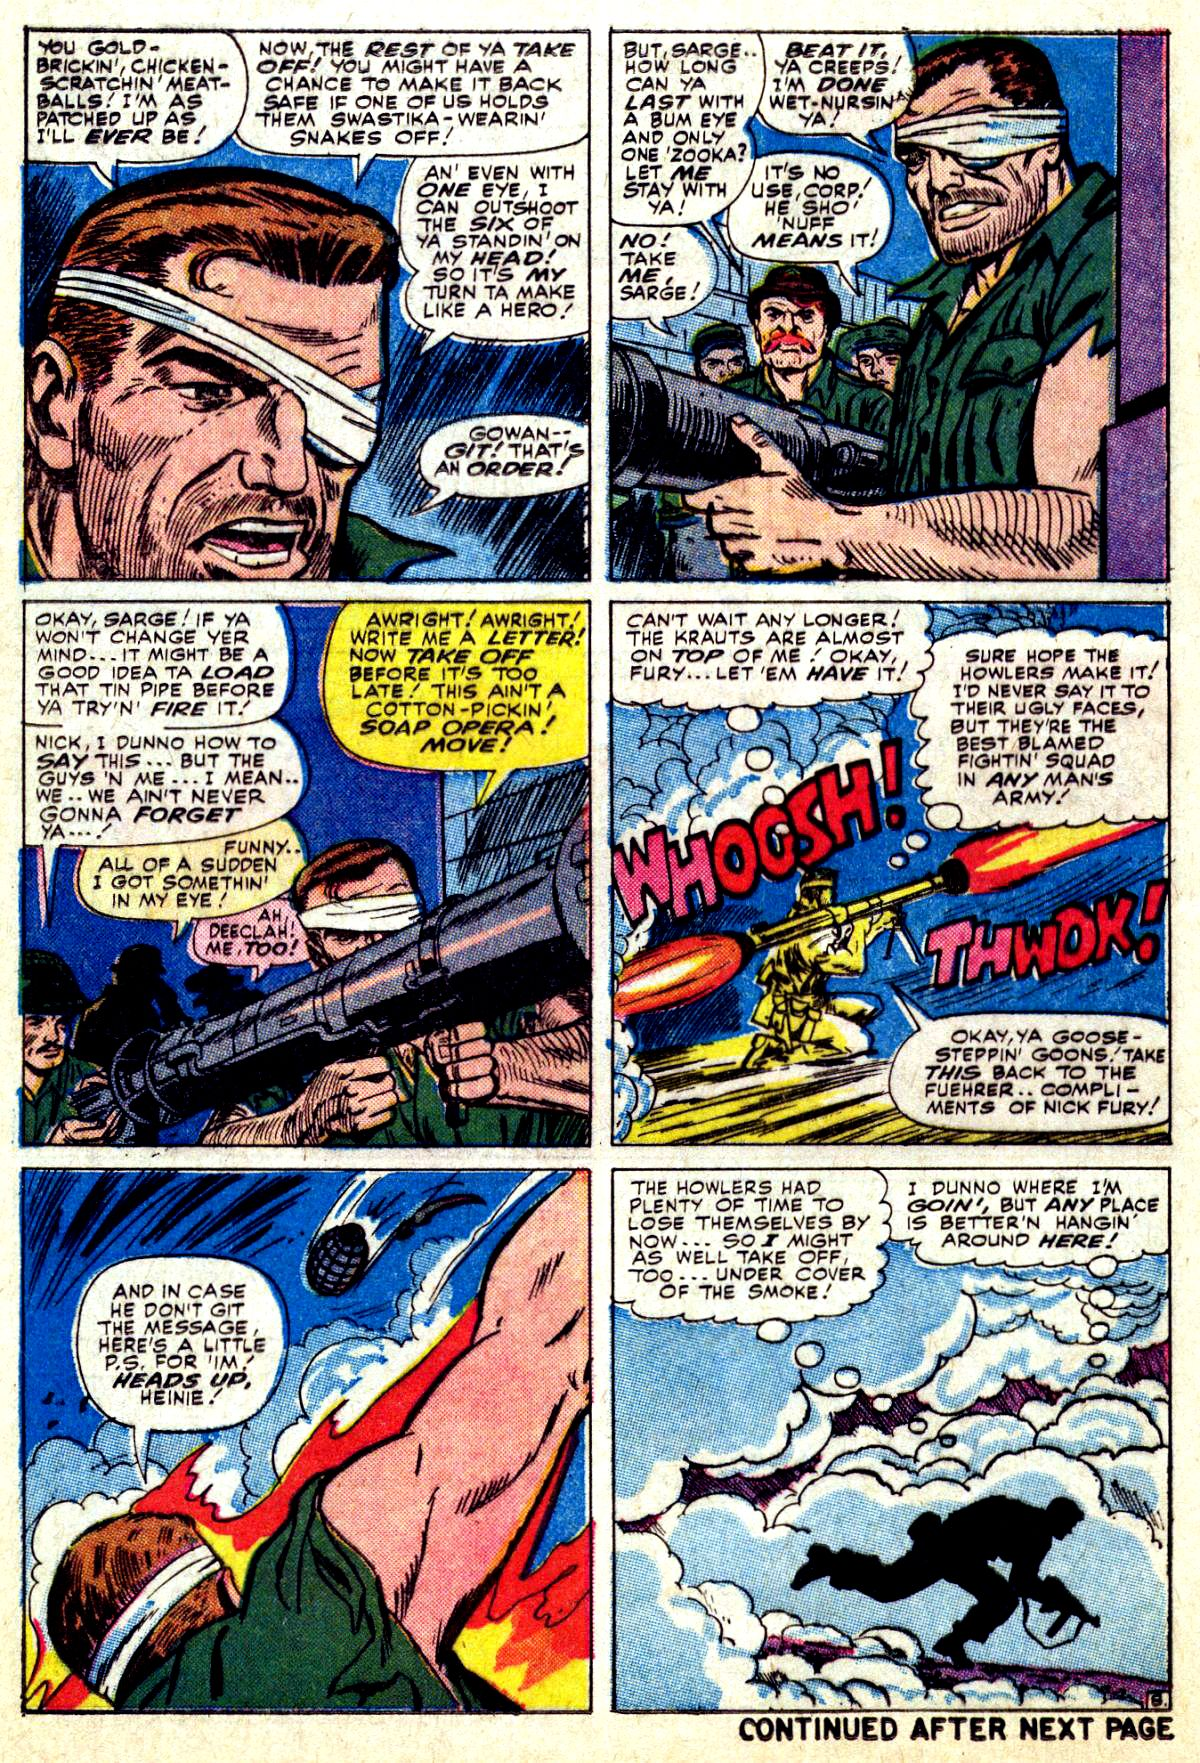 Read online Sgt. Fury comic -  Issue #27 - 12